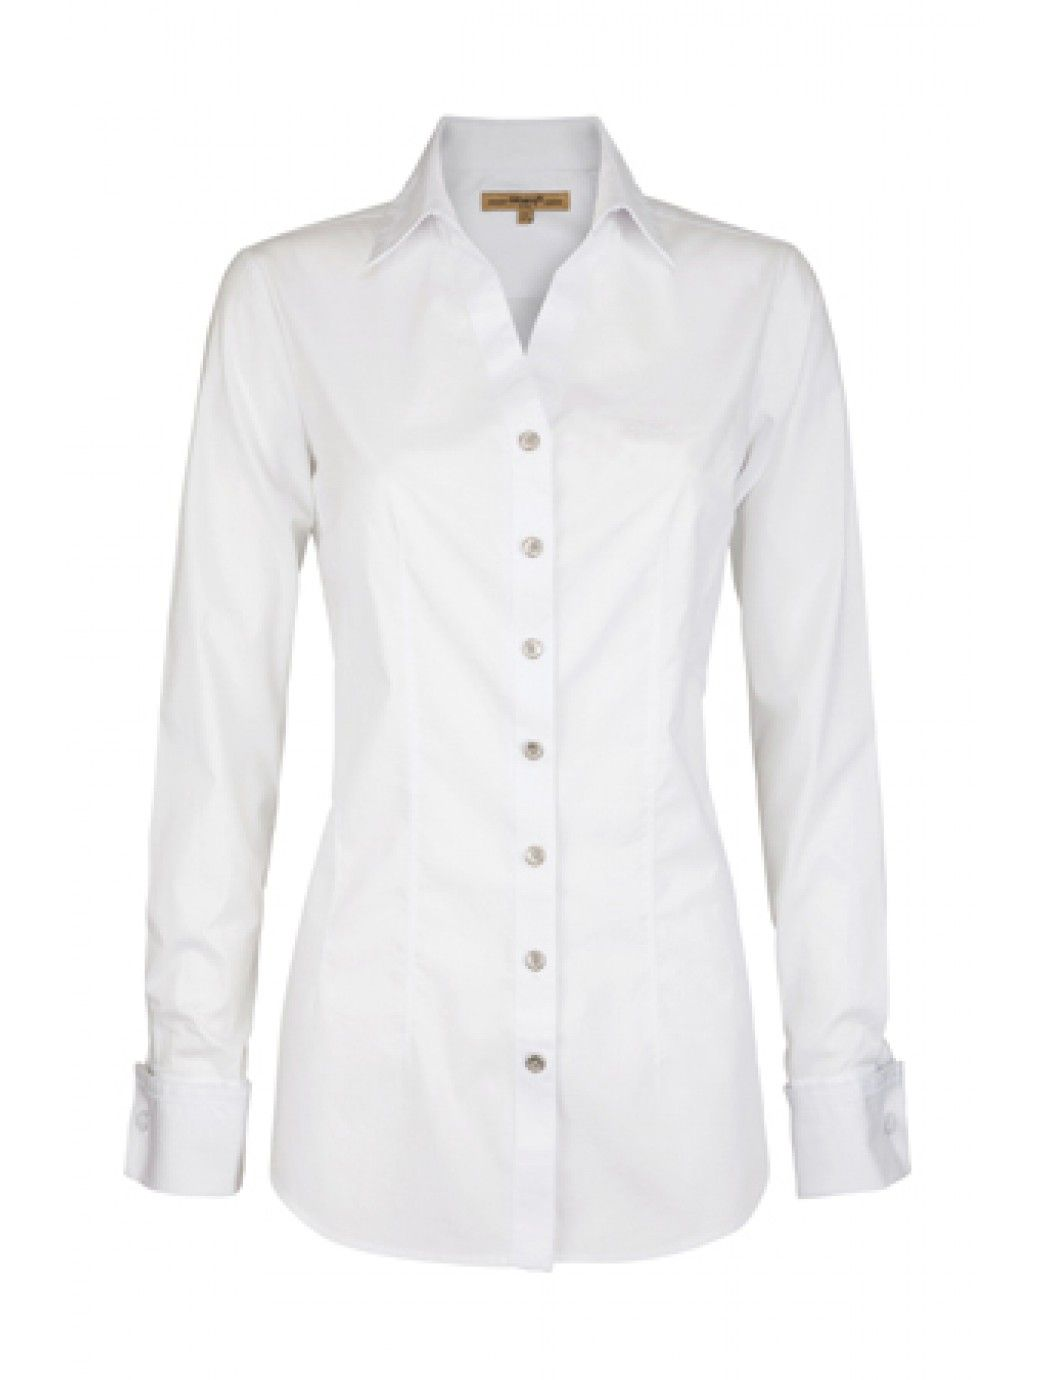 bafef5d89 A long sleeve fitted shirt with wing collar and pleat detail .dubarry